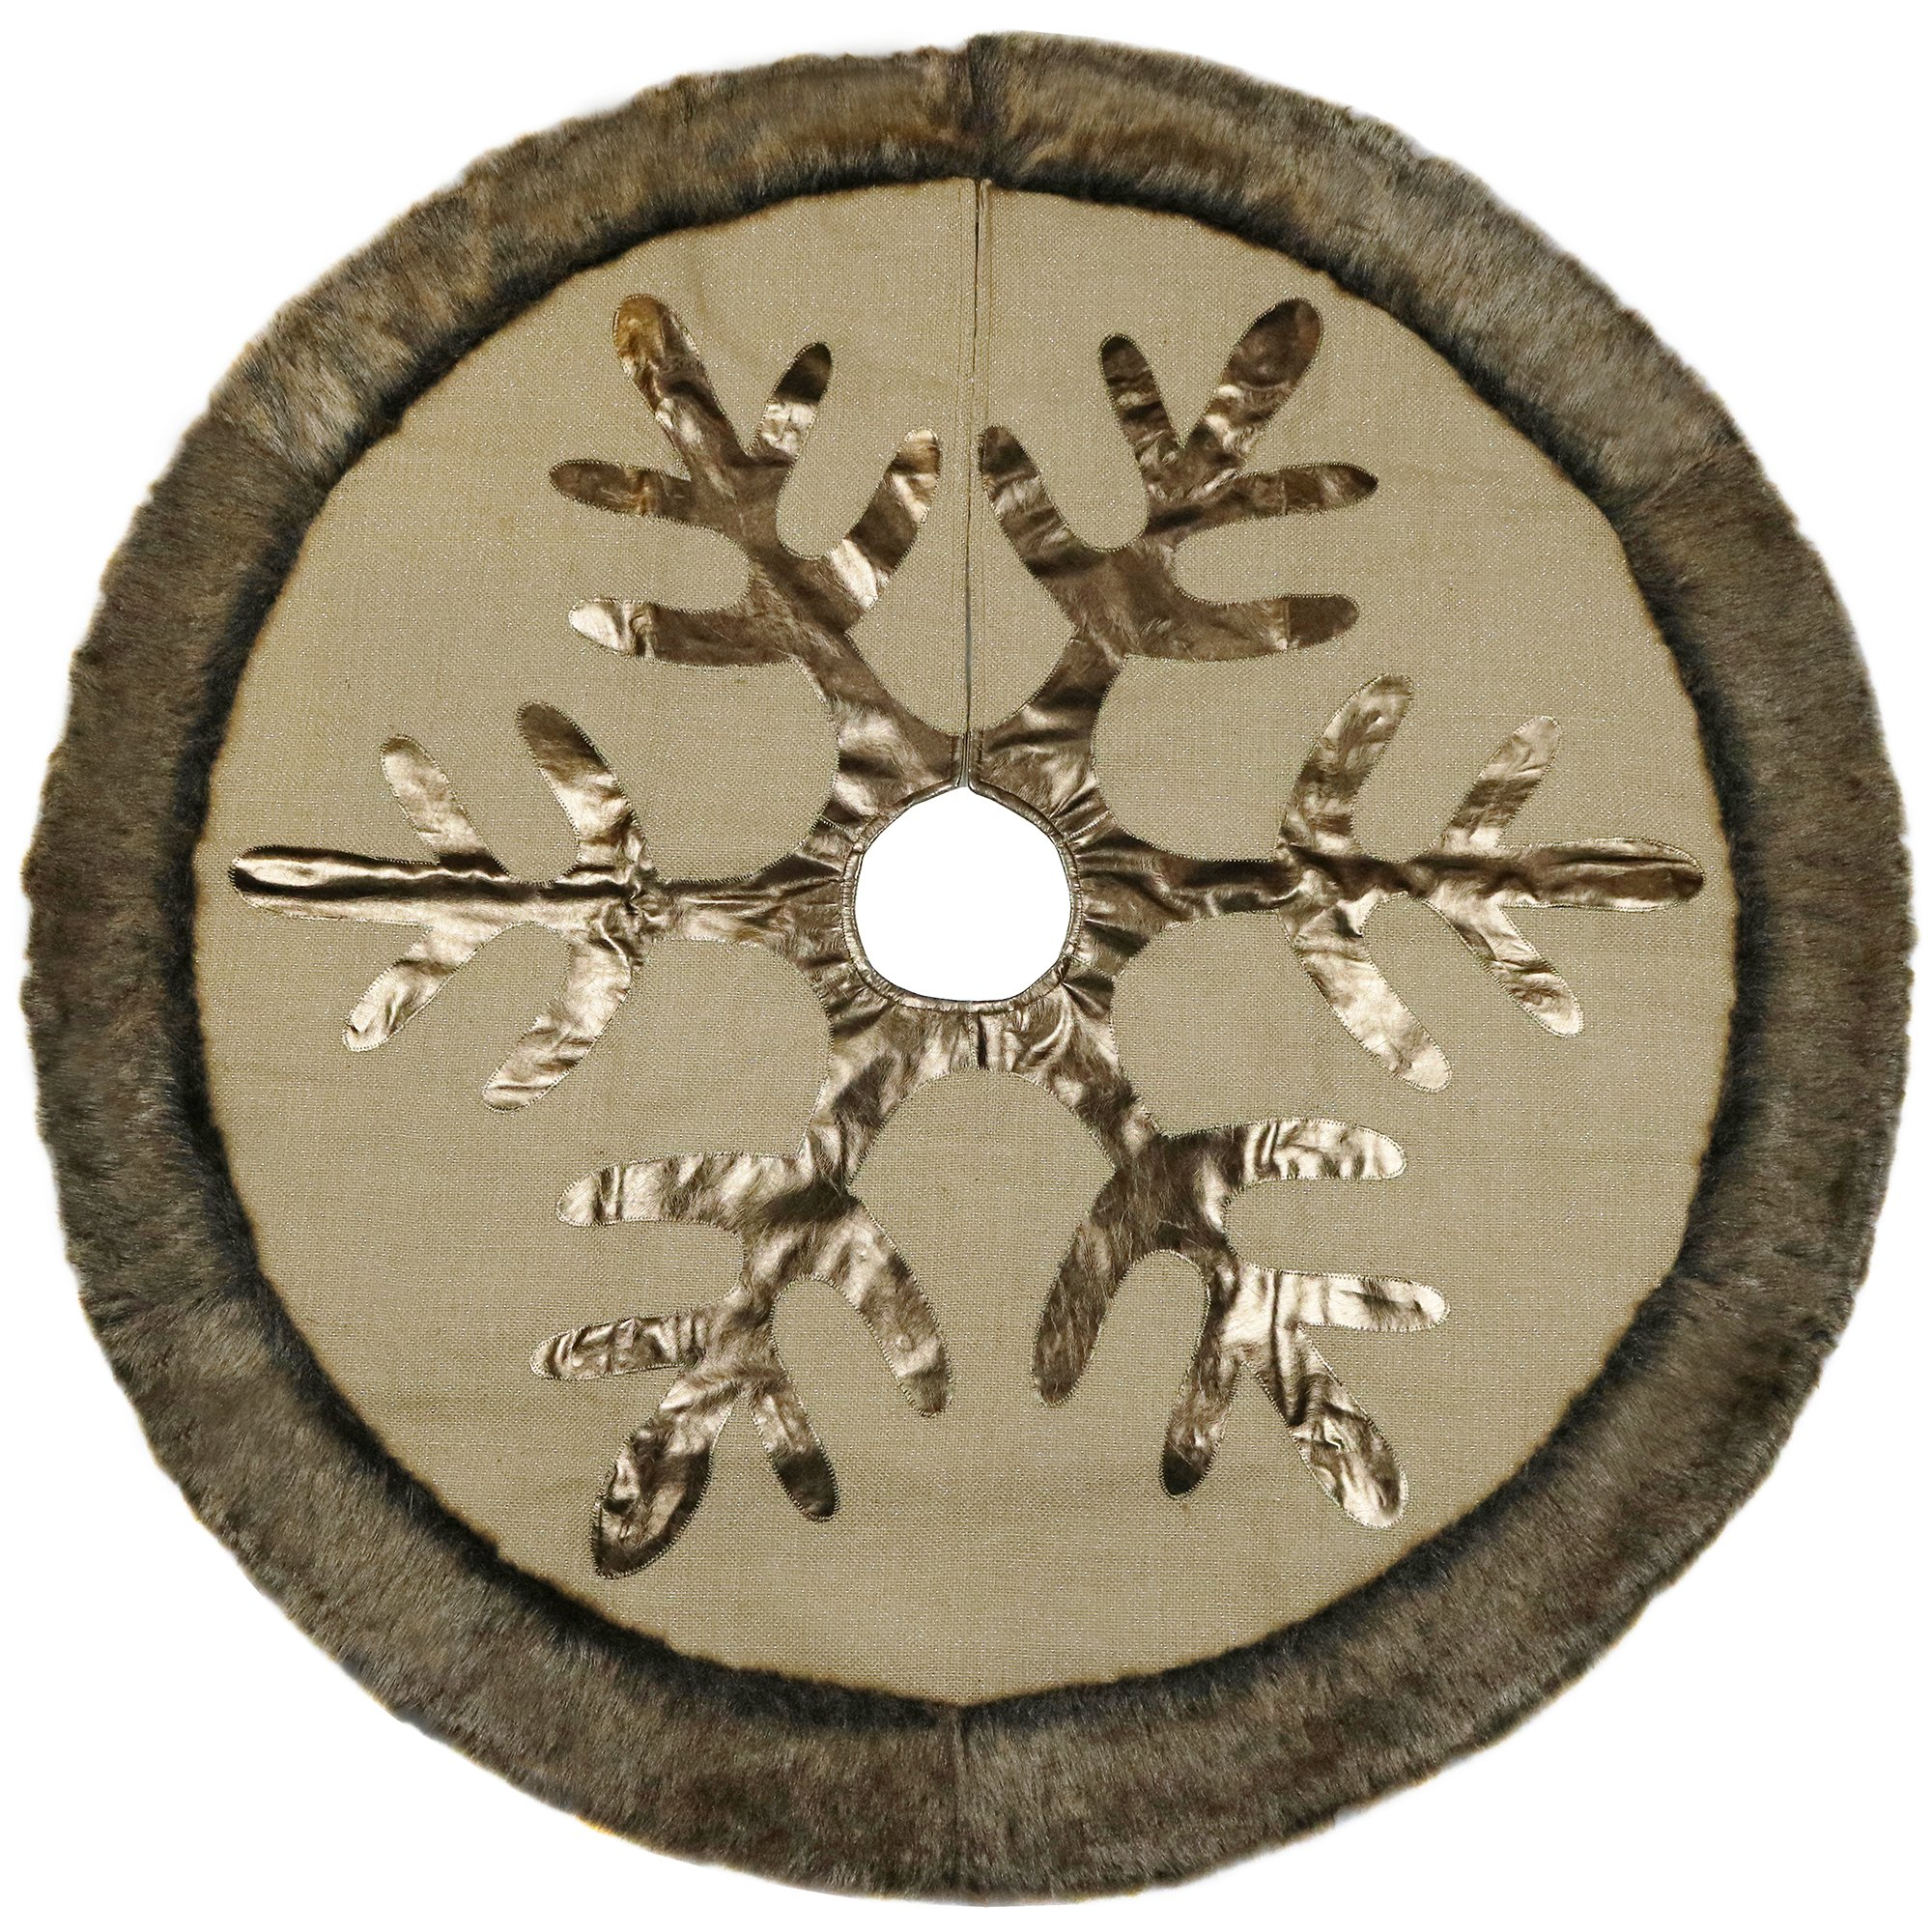 V&M VALERY MADELYN Valery Madelyn 48'' Woodland Collection Burlap Christmas Tree Skirt with Faux Fur Trim Border,Themed with Christmas Ornament(Not Included)